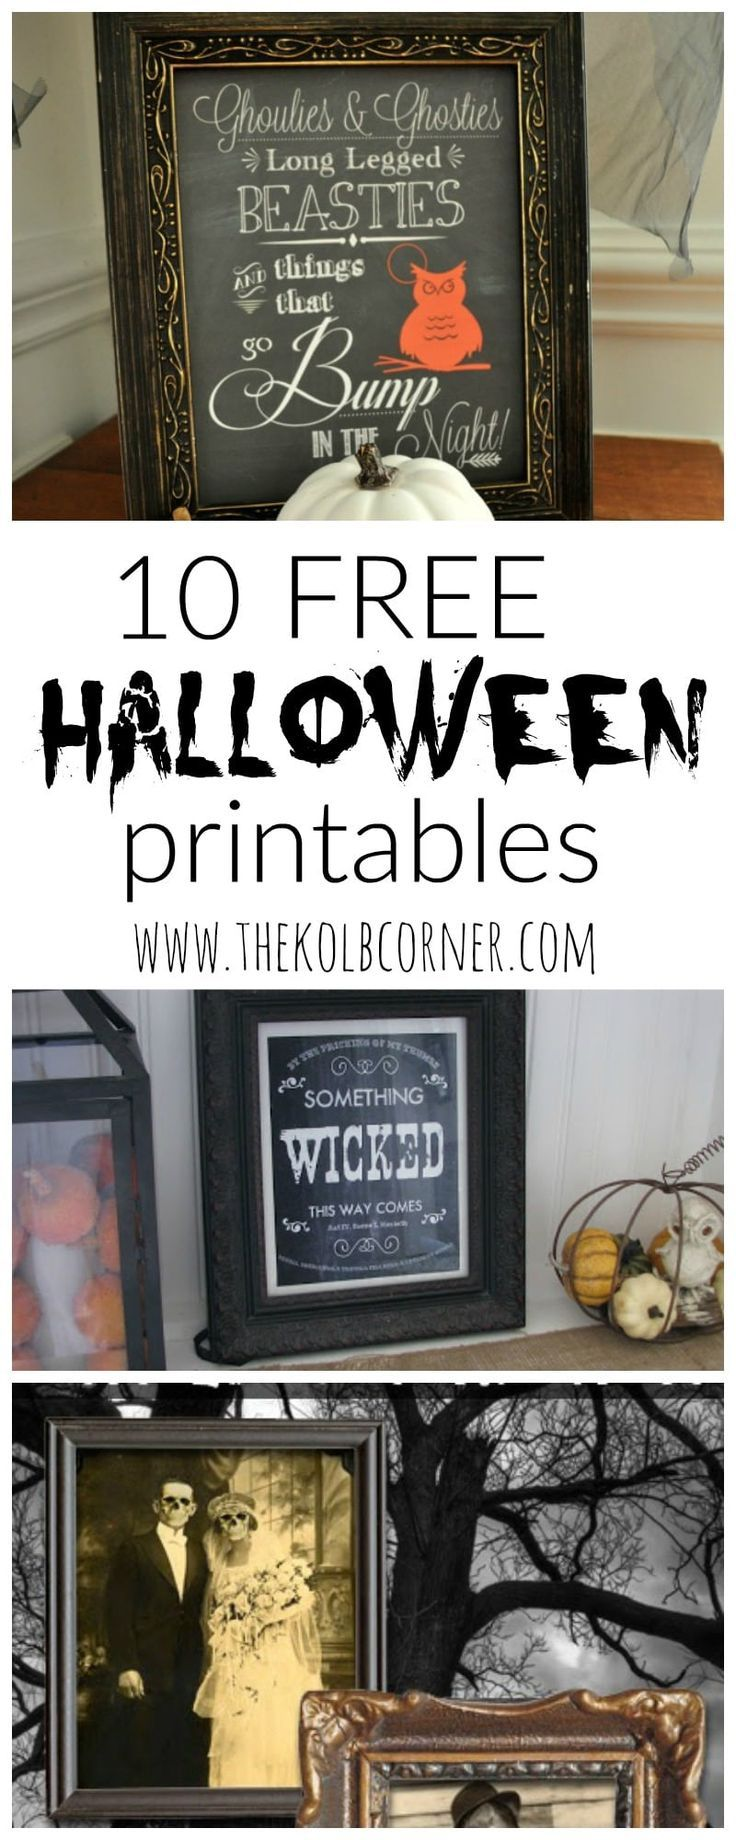 Printables are the easiest way to add some holiday flair to your decor, without breaking the bank or going to0 far overboard. Now I'm not one that loves to decorate for Halloween, but with some of these creepy printables, I may change my mind next year. Since Halloween is just right around the corner, I …